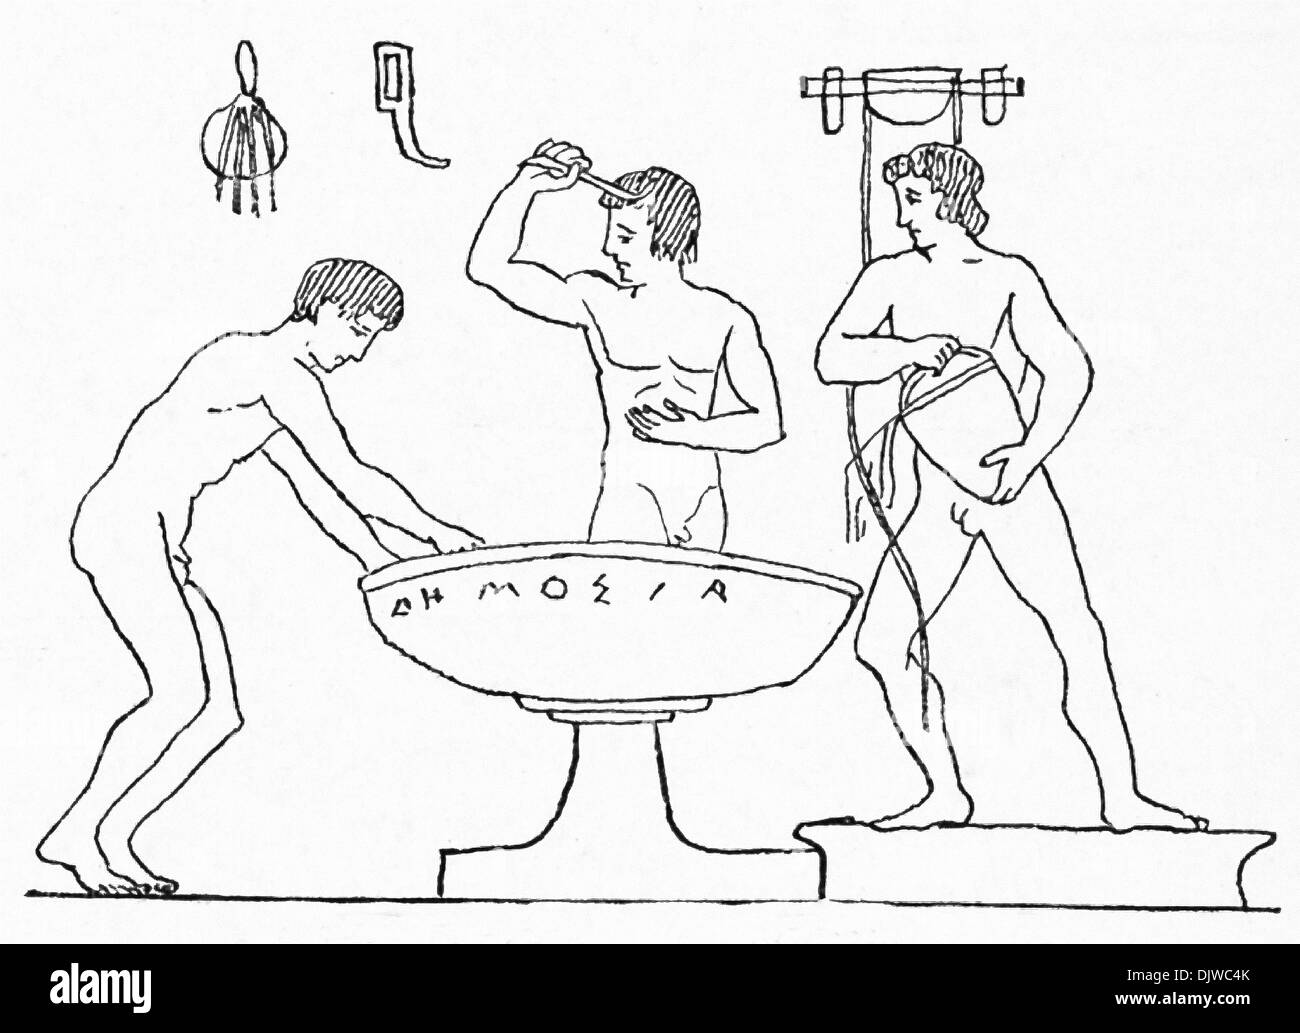 This red-figured vase painting shows ancient Greek youths washing after athletic practice. In the center is a large stone basin. - Stock Image